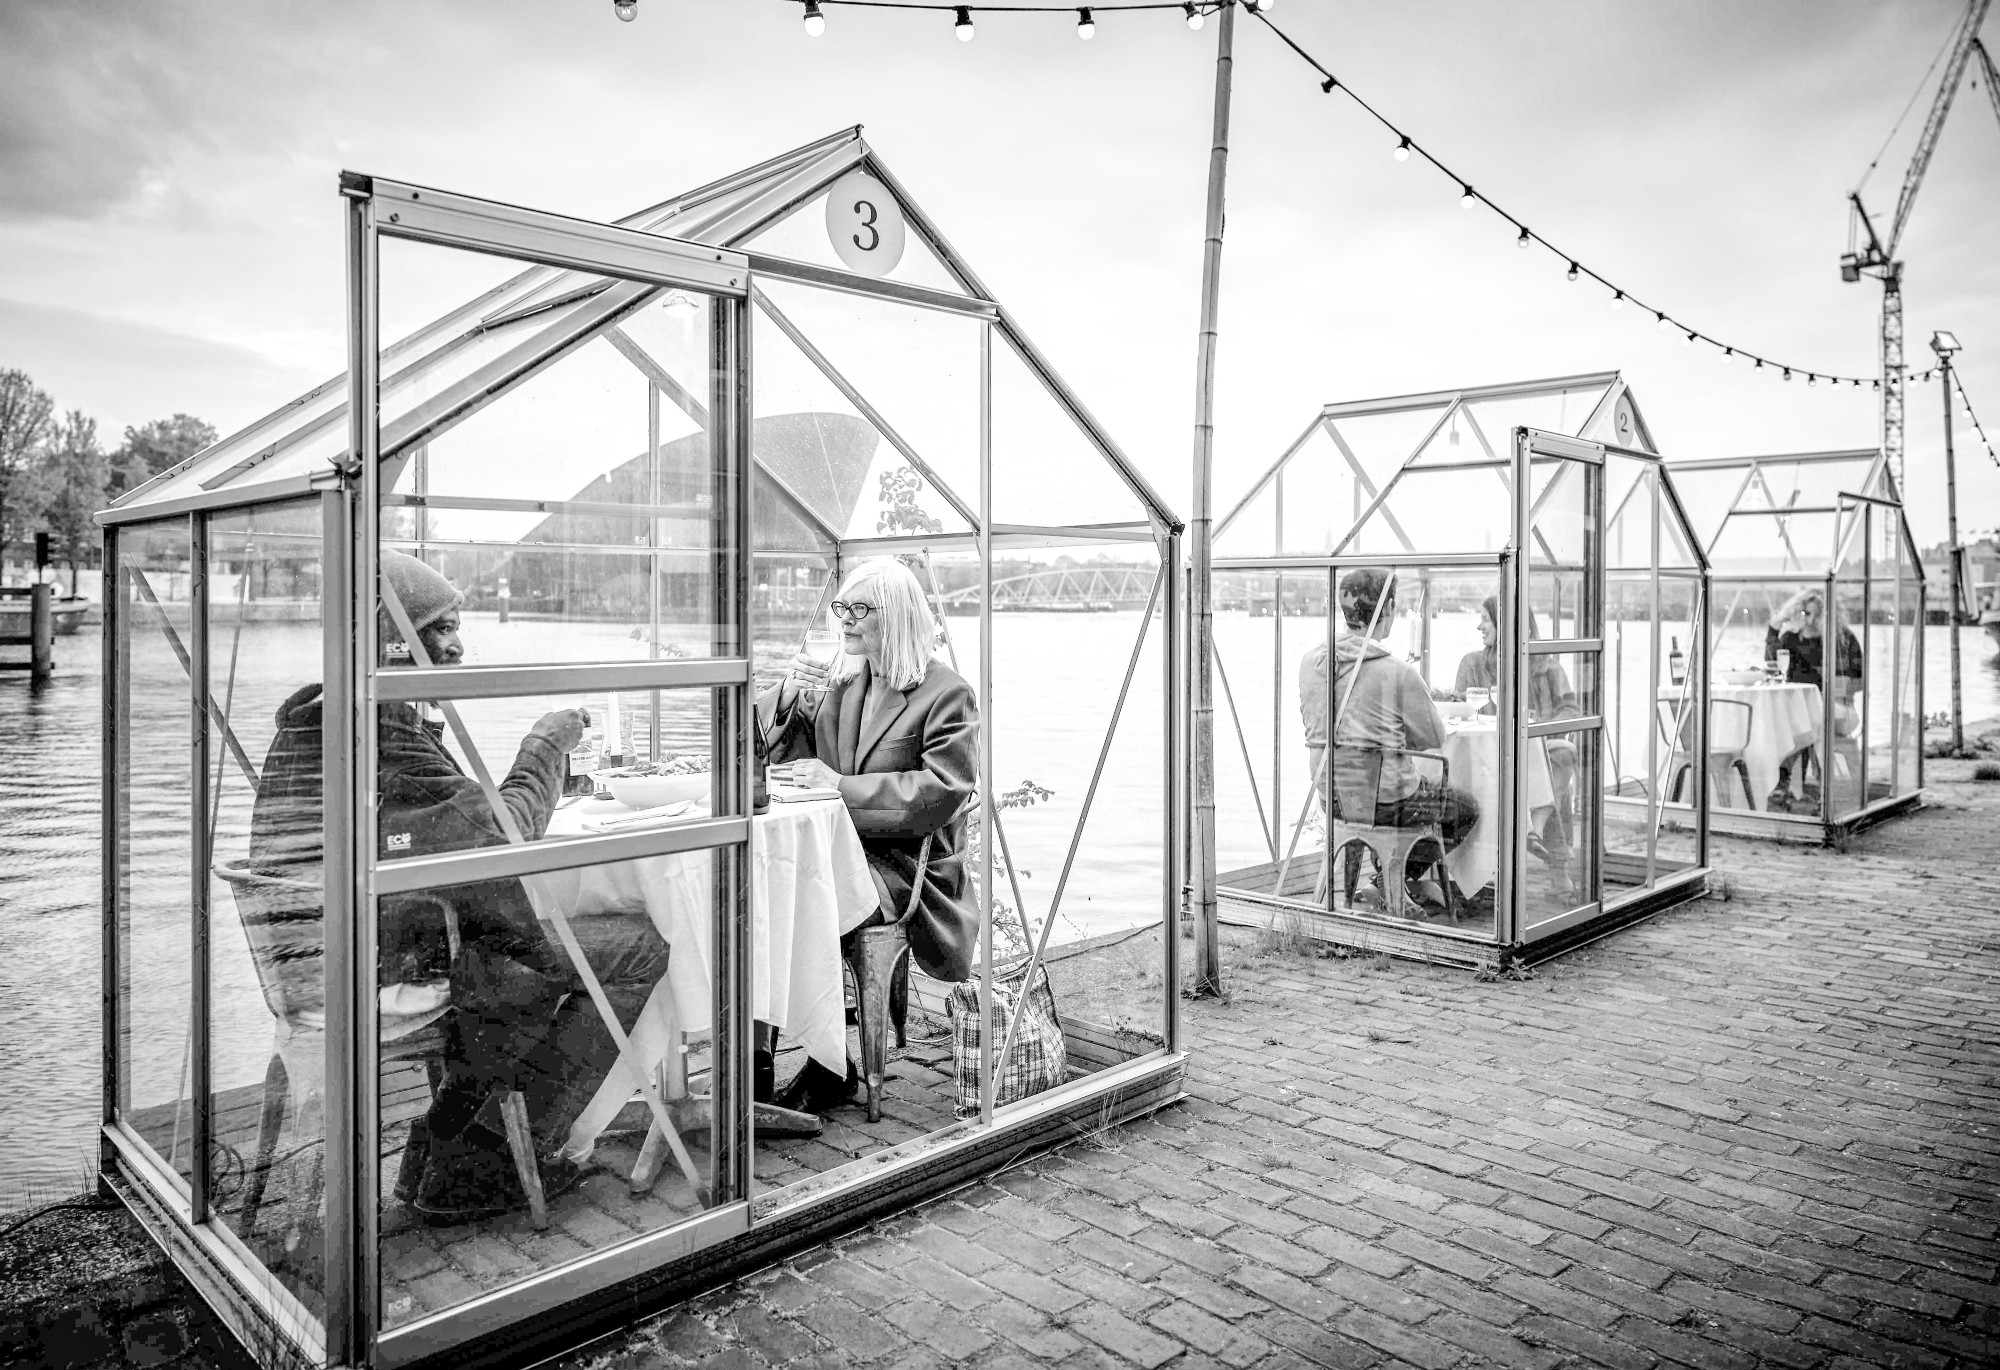 Guests of ETEN sitting inside greenhouses that the restaurant has converted into isolated dinning pods.